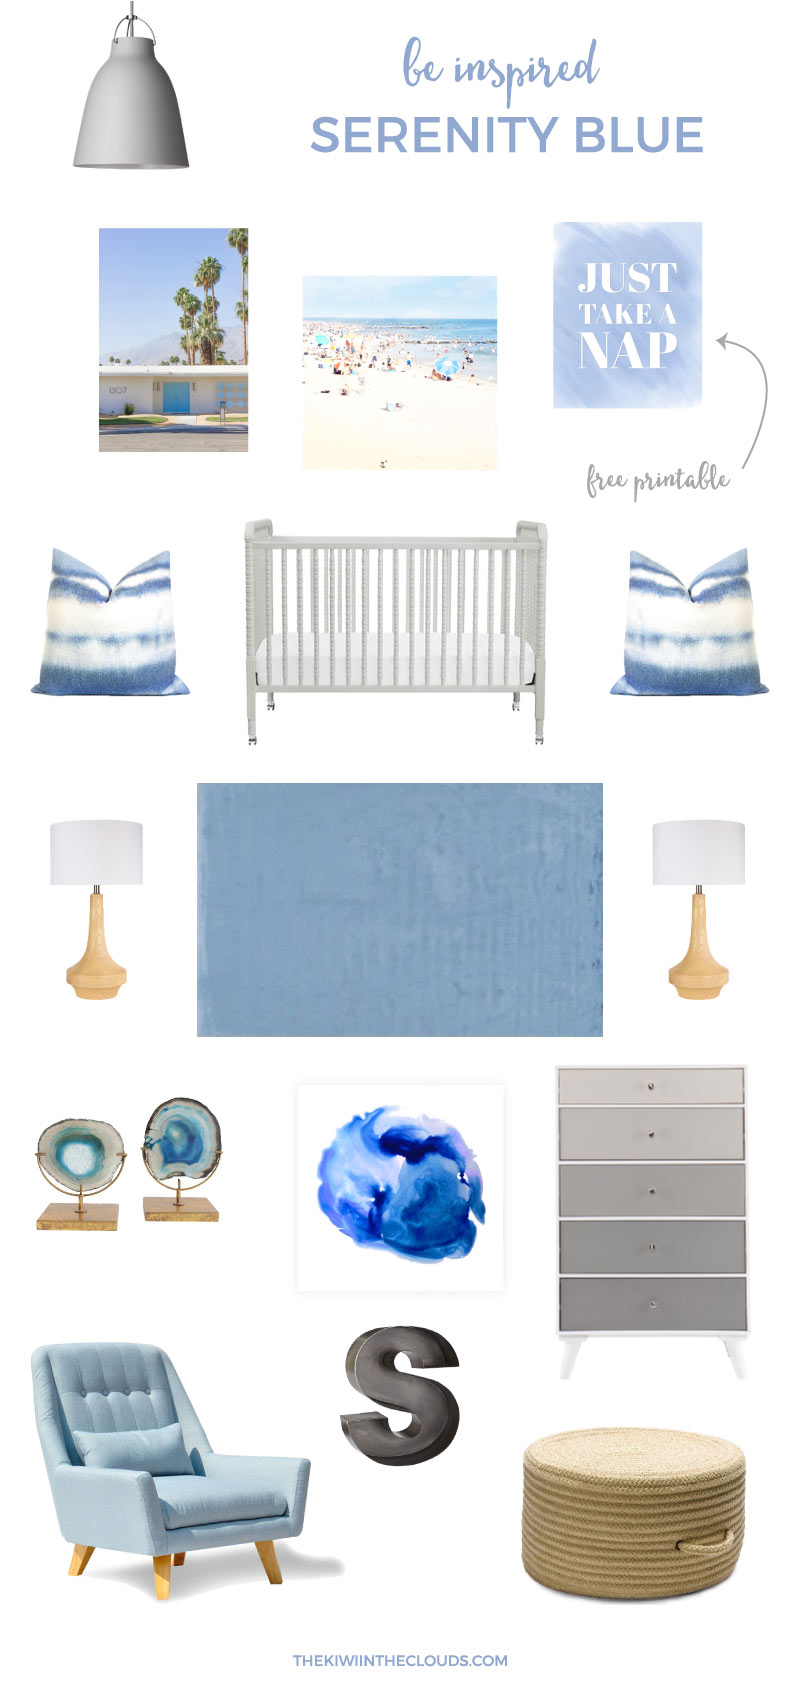 Pantone Nursery | You've seen the Rose Quartz nursery board, now make room for the Serenity blue nursery board. Be right on trend with this cool and calming blue nursery. And download your FREE corresponding printable wall art!